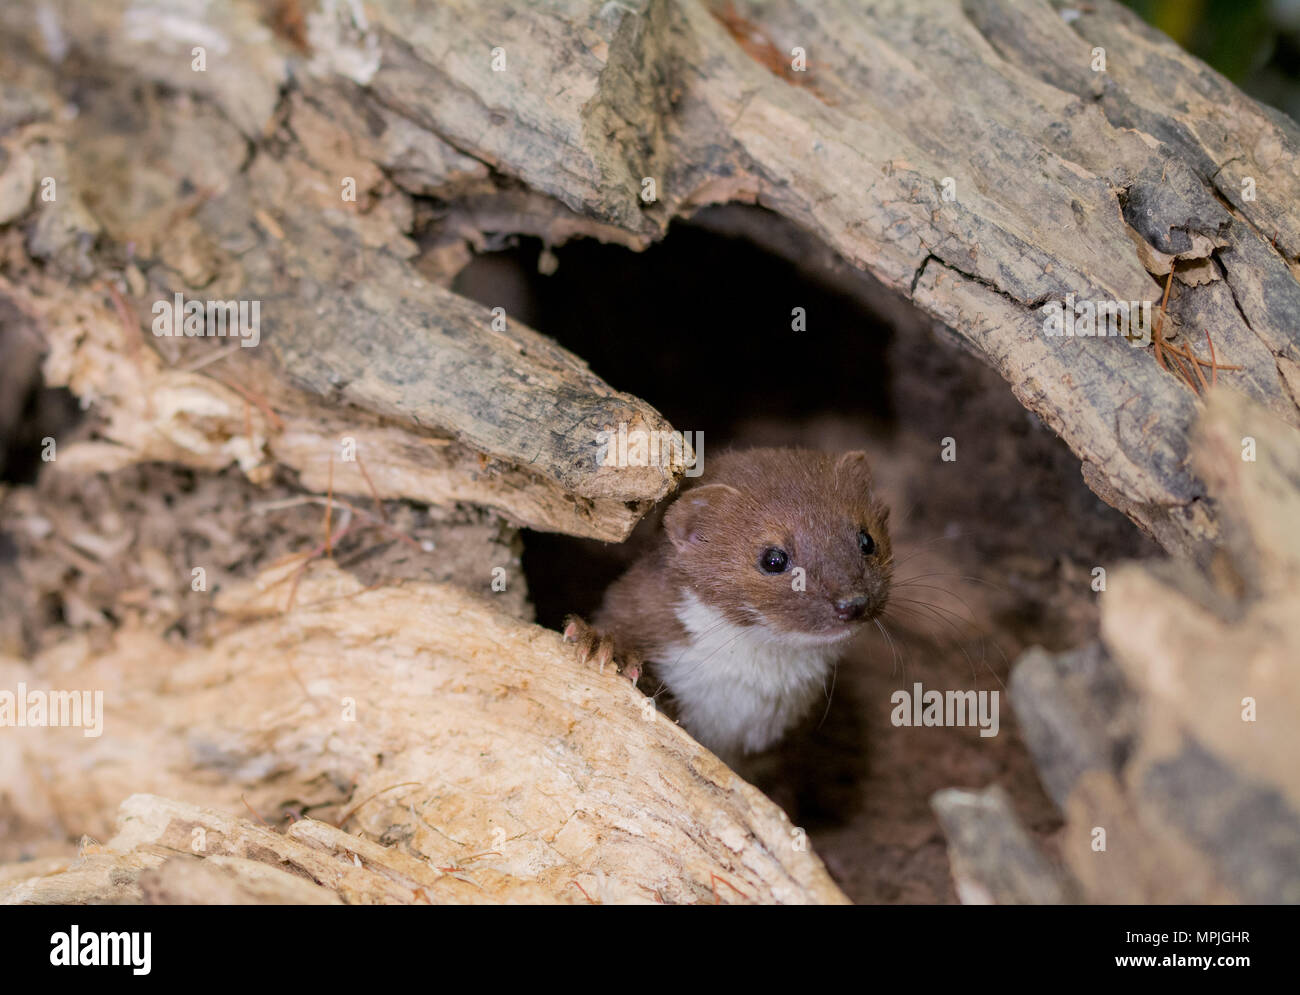 a wild weasel looking out through a log - Stock Image